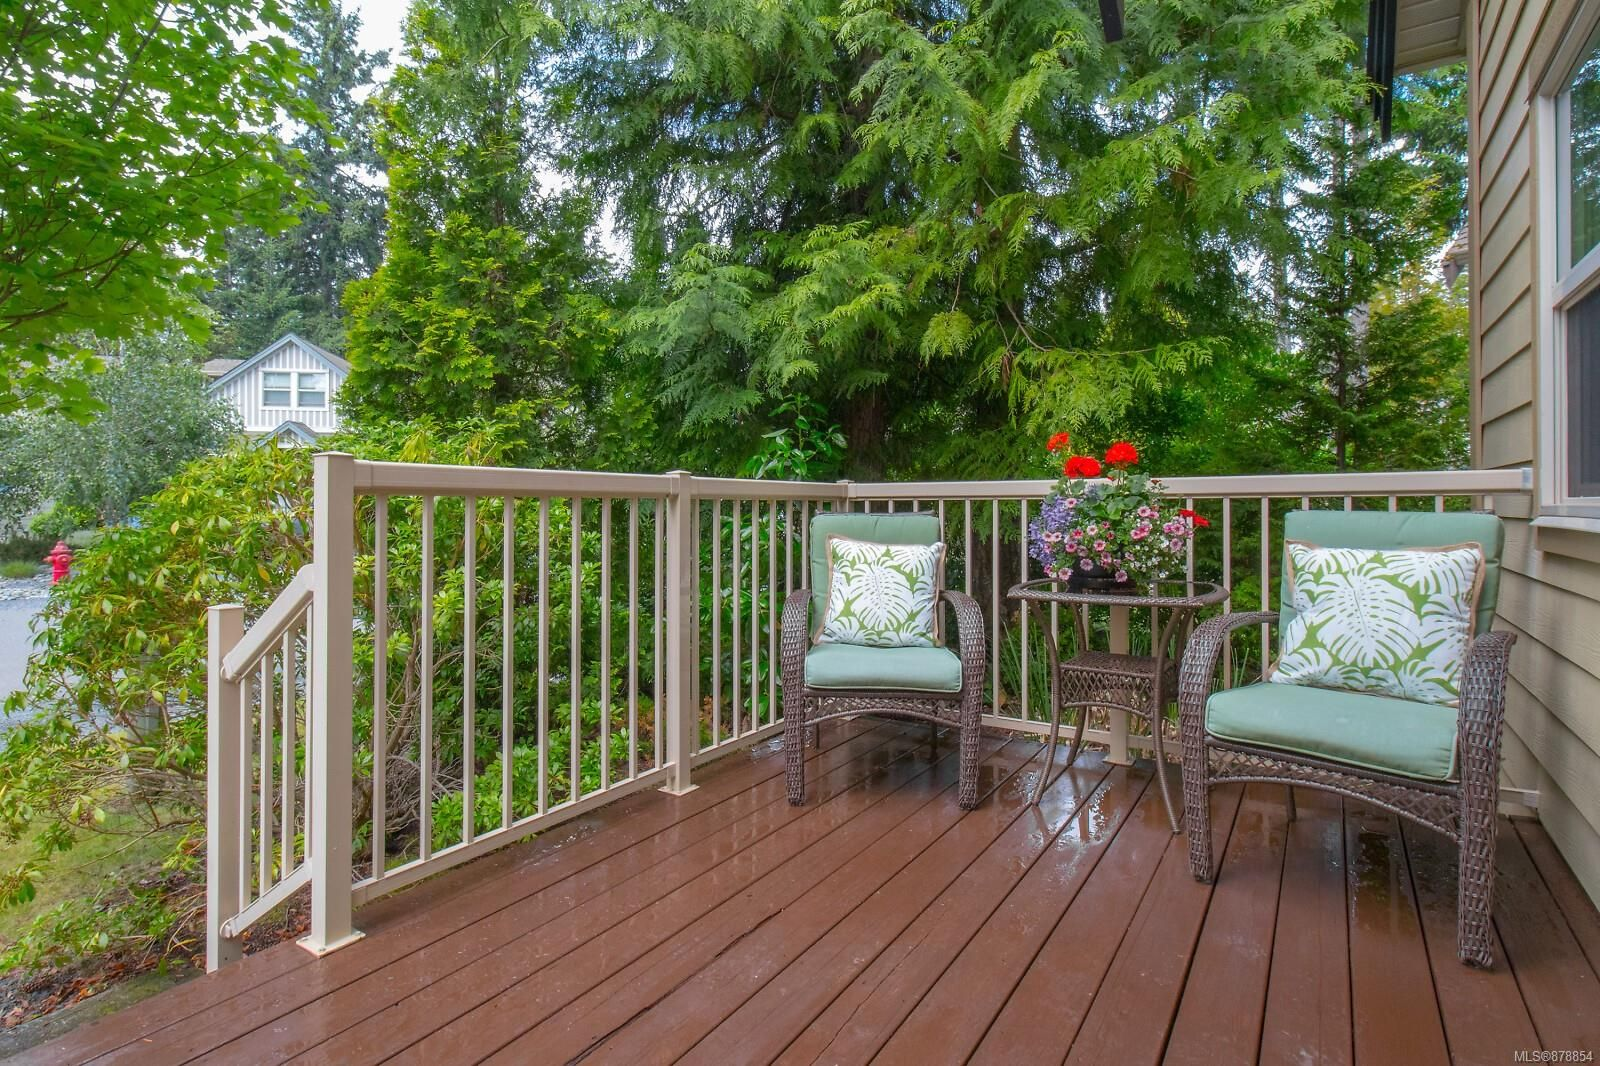 Photo 25: Photos: 223 1130 Resort Dr in : PQ Parksville Row/Townhouse for sale (Parksville/Qualicum)  : MLS®# 878854